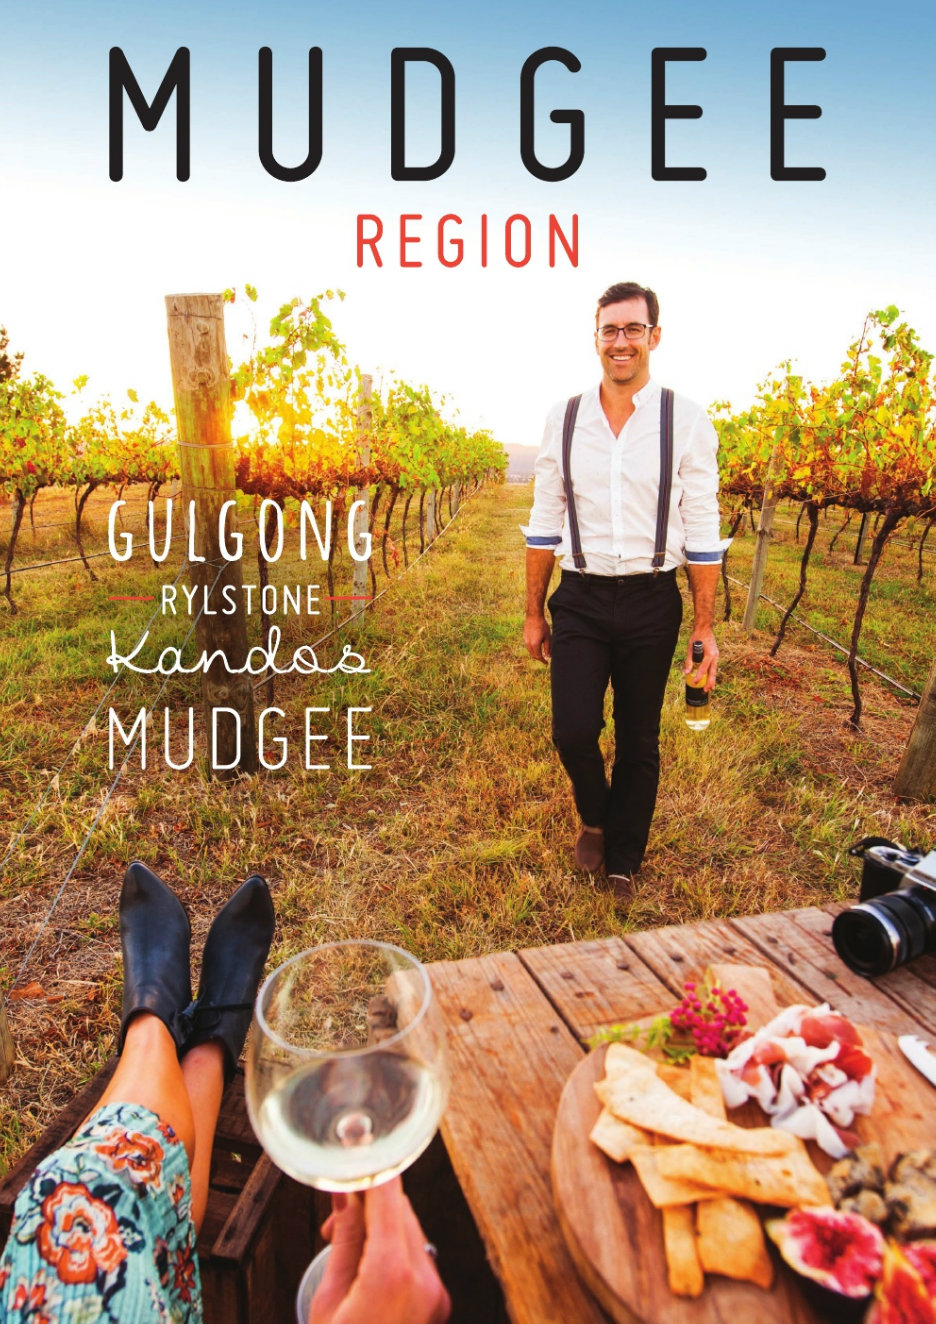 learn more about the many offerings of the mudgee region from the official visitor's guide, available around town or from mudgee region tourism.